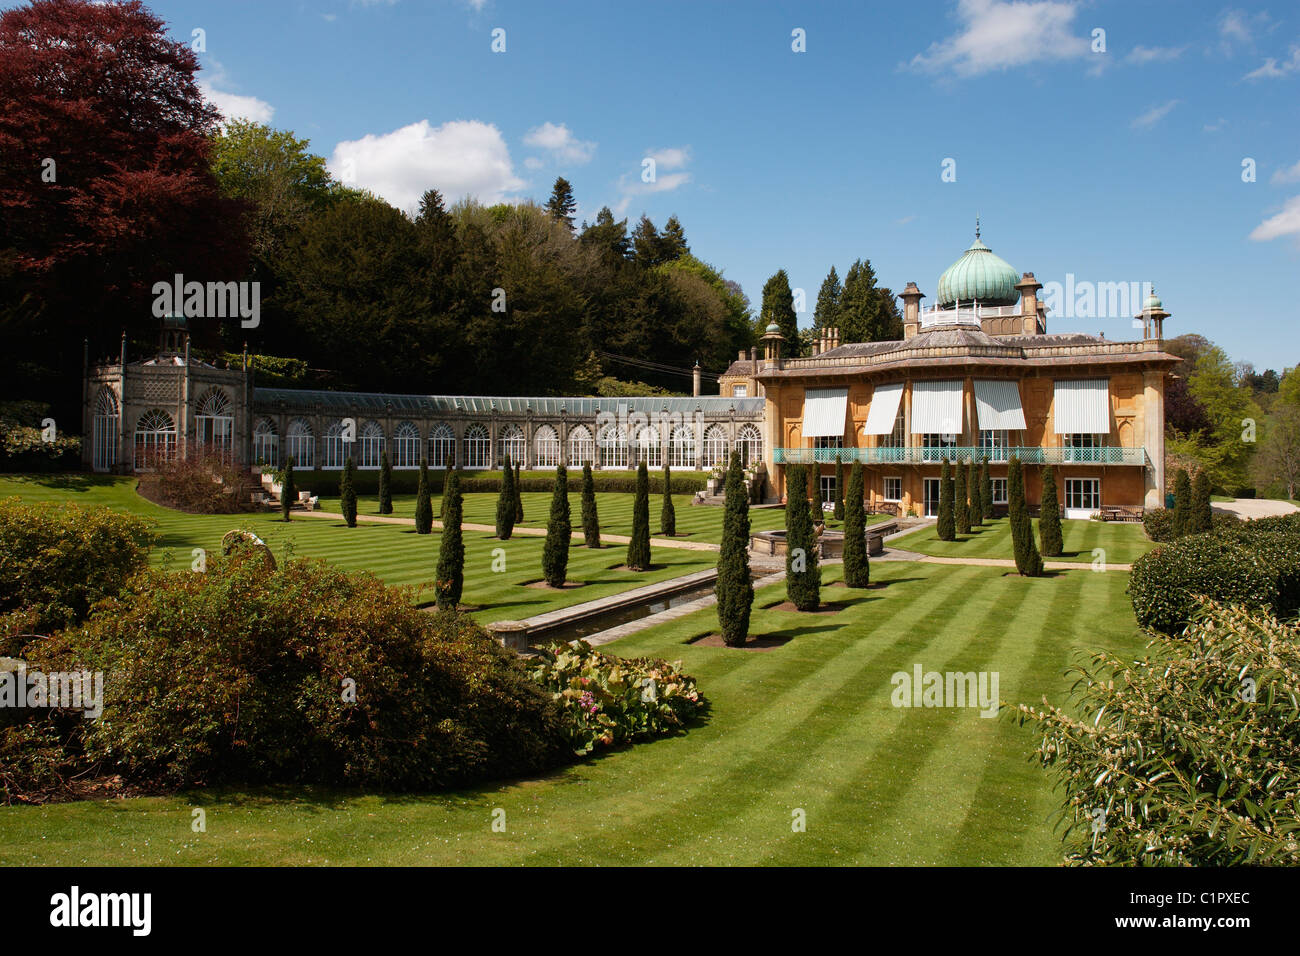 England, Gloucestershire, Moreton-in-Marsh, Sezincote House from formal gaden - Stock Image